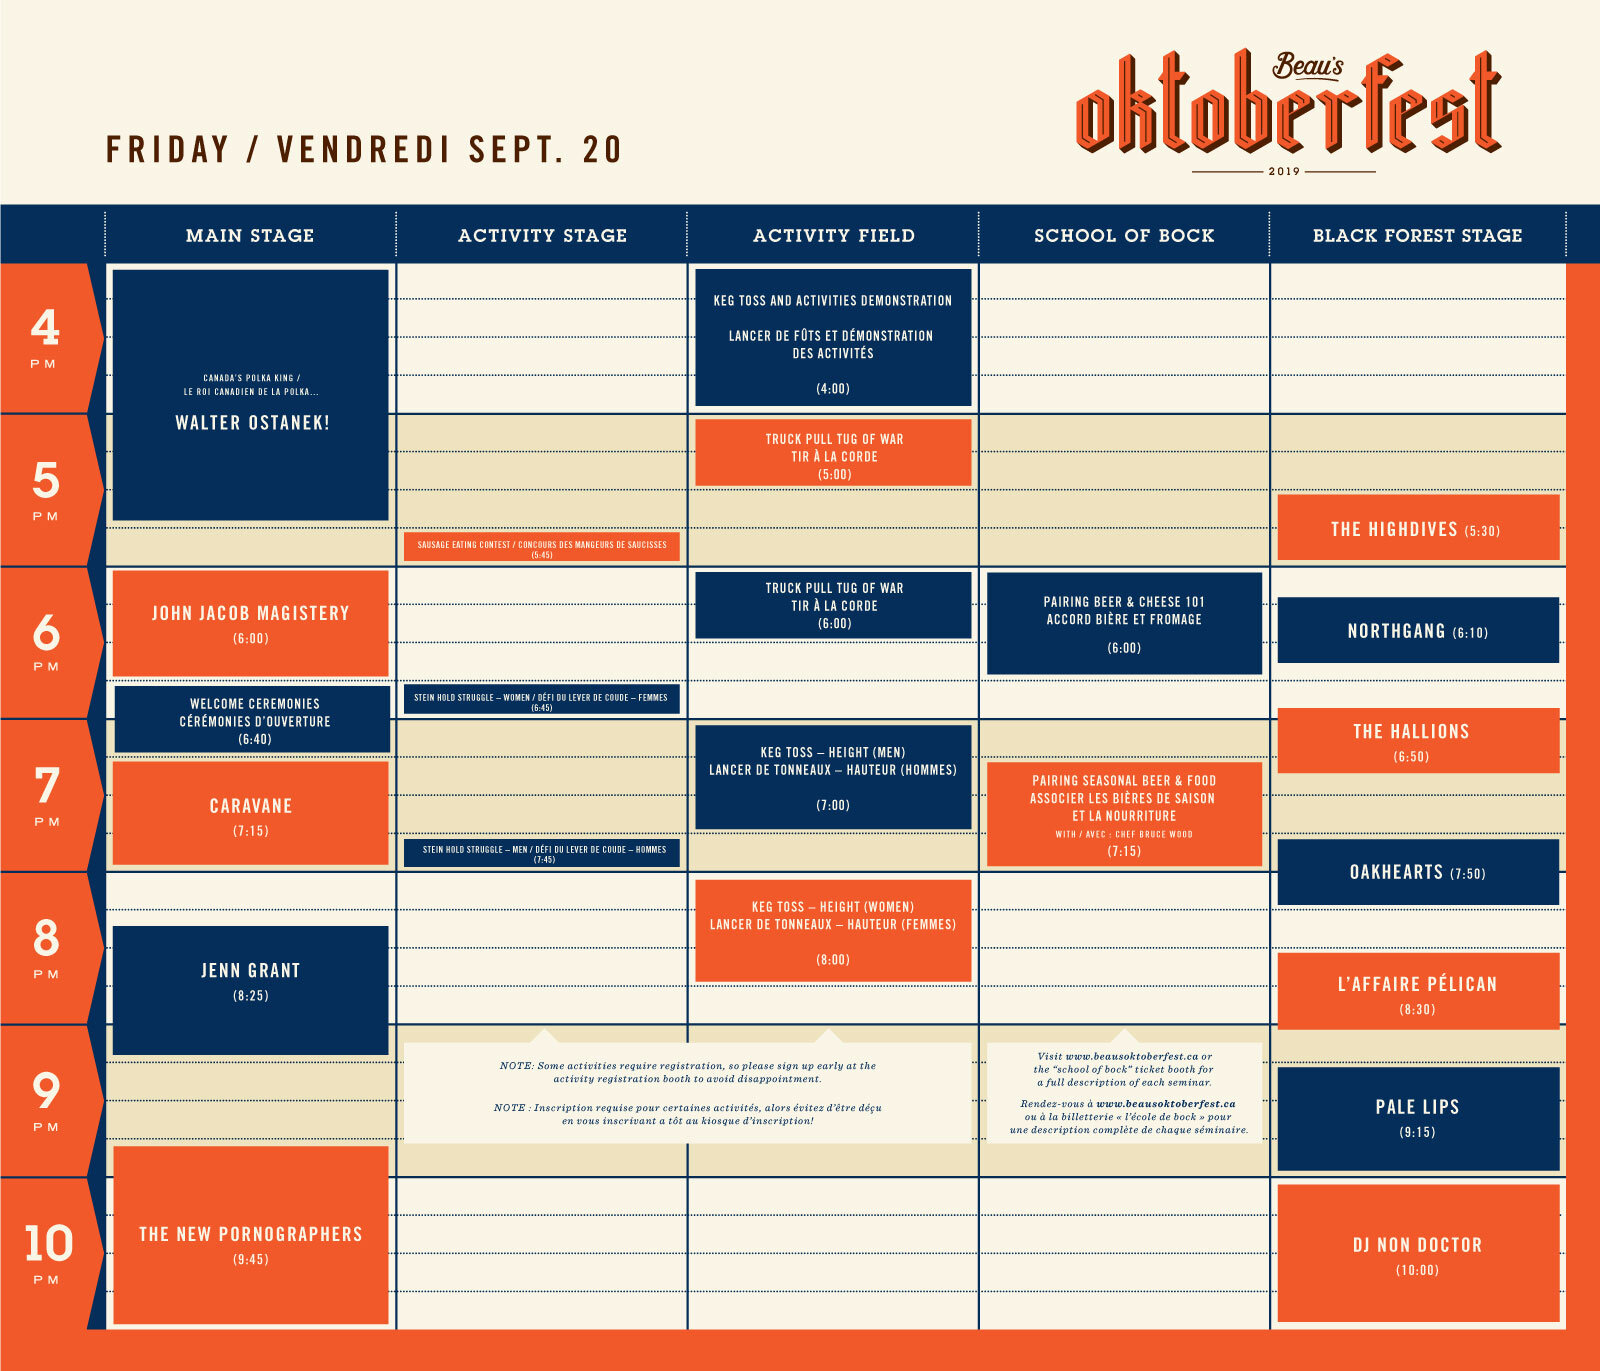 okt-2019-schedule-friday.jpg